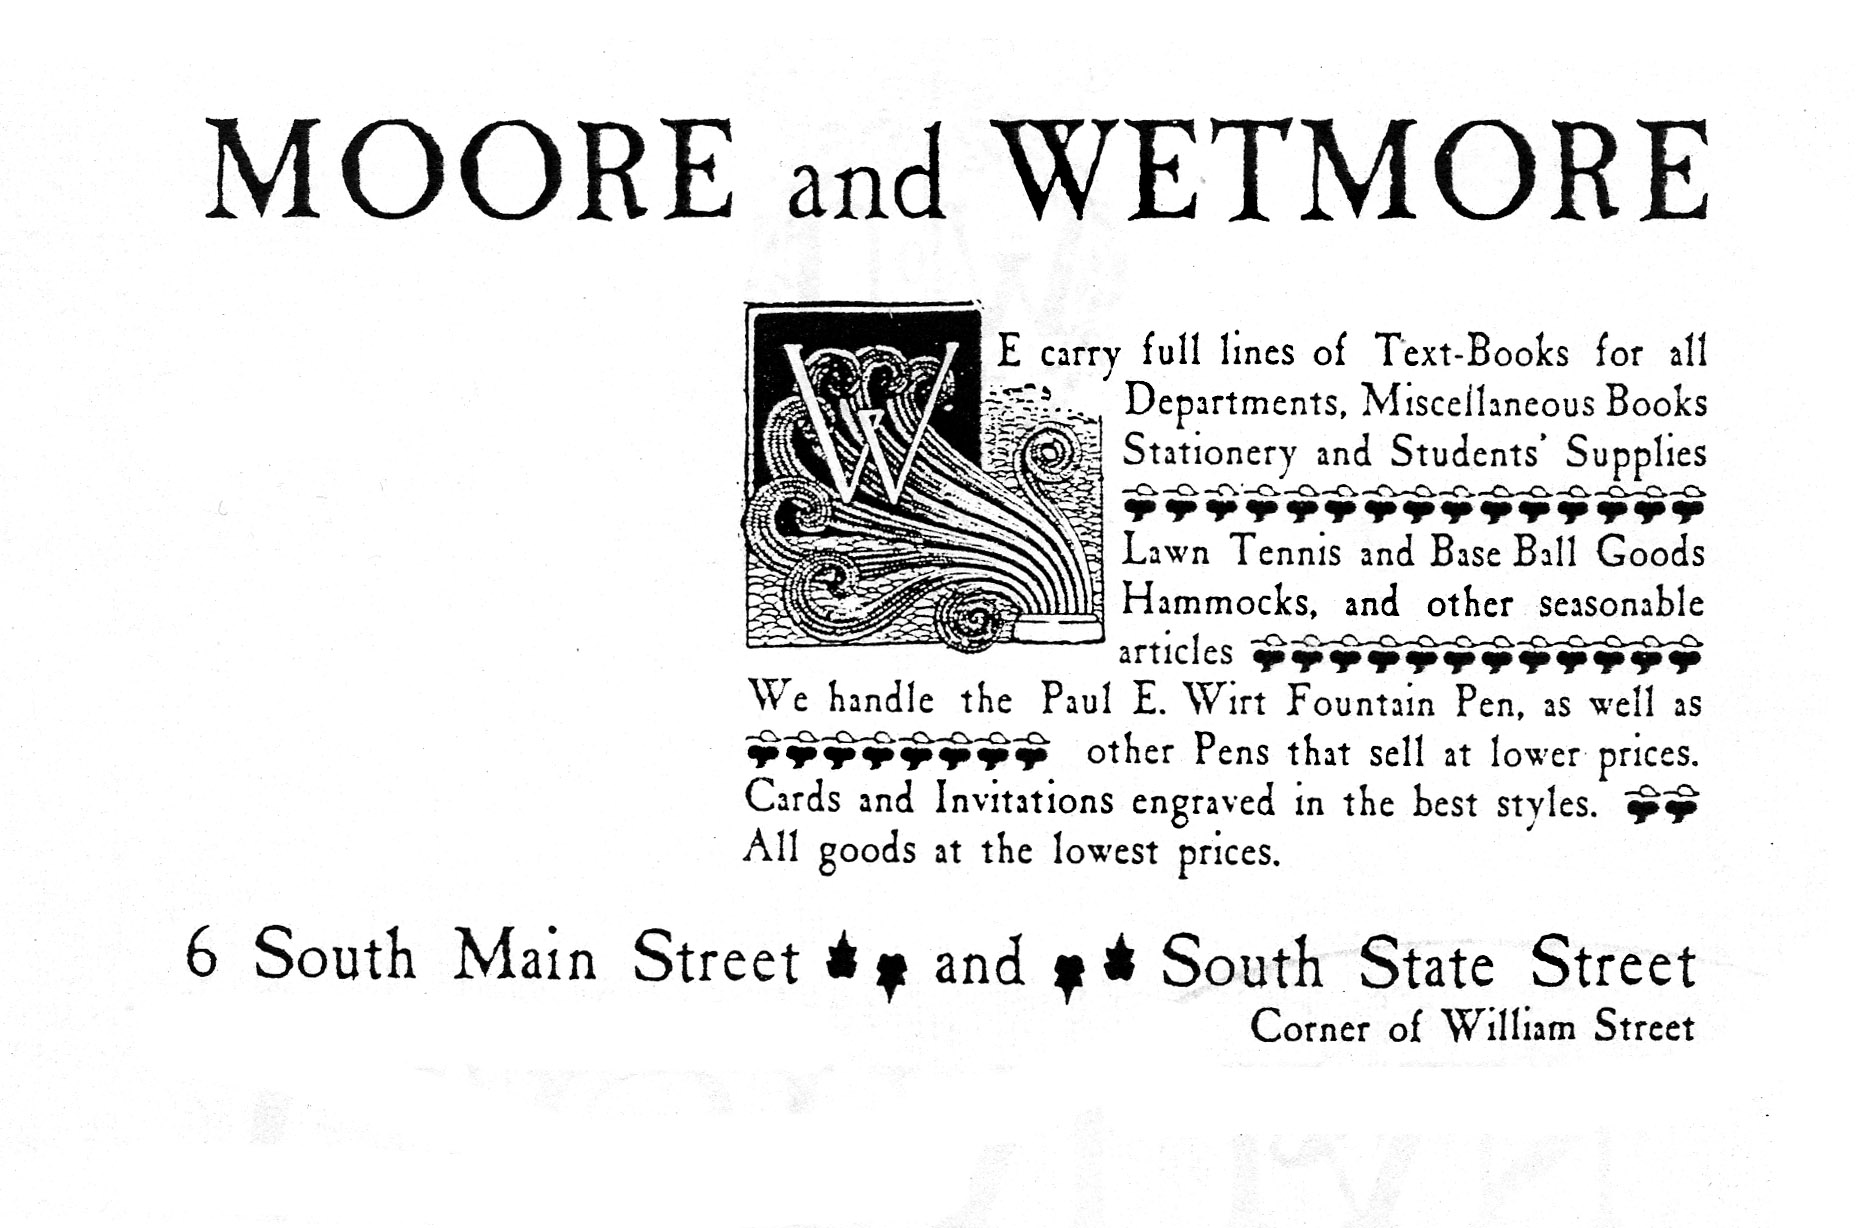 Moore and Wetmore, 1890 image